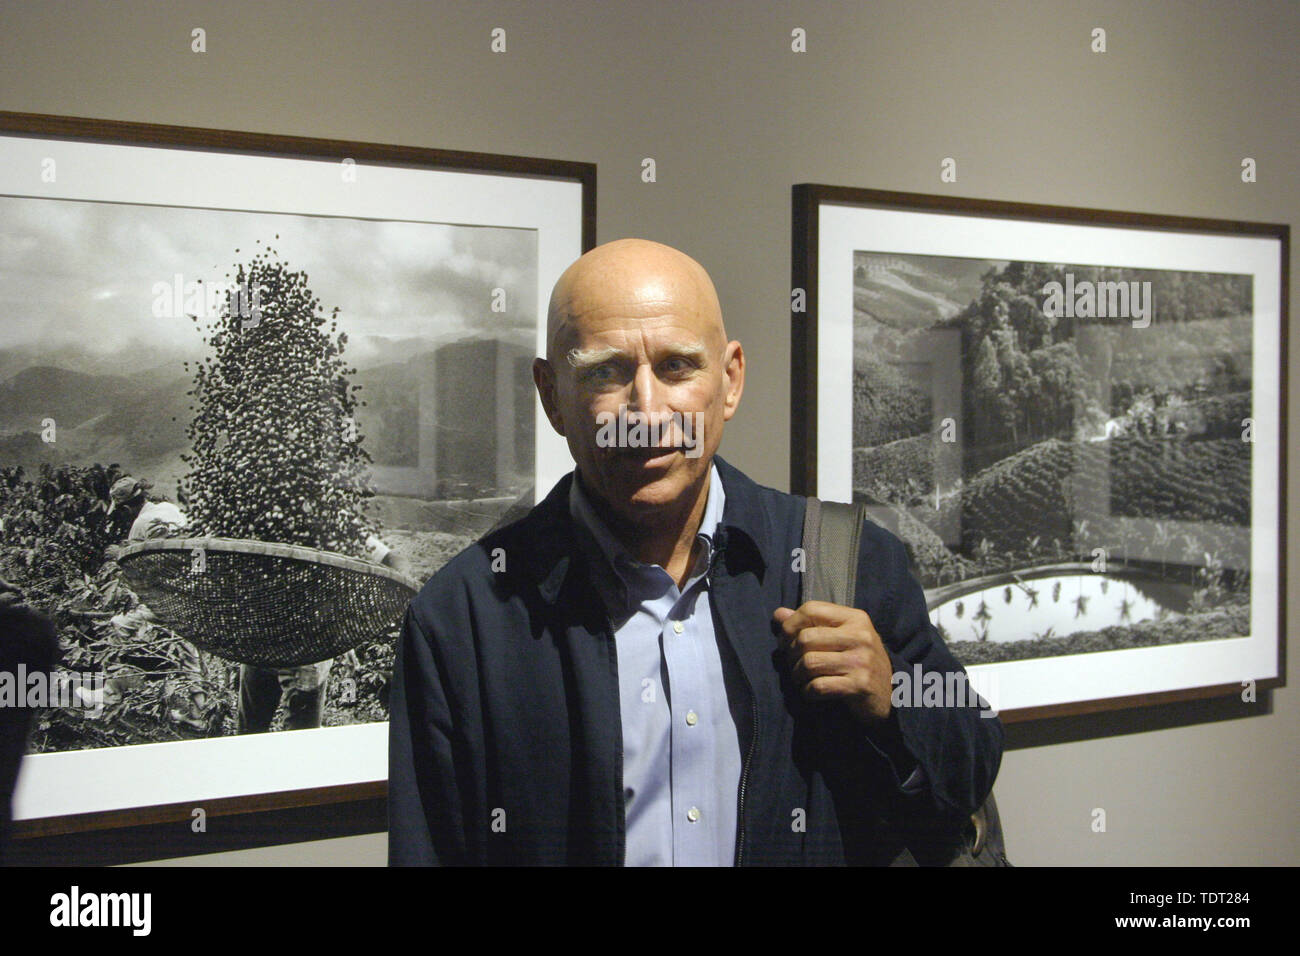 Berlin, Deutschland. 05th Sep, 2008. The Brazilian photographer Sebastiao Salgado at a press conference for the exhibition opening 'A photographic journey on the trail of coffee' in the co gallery on Friday (05.09.2008) in Berlin. Credit: Xamax     (c) dpa - Report     | usage worldwide/dpa/Alamy Live News - Stock Image